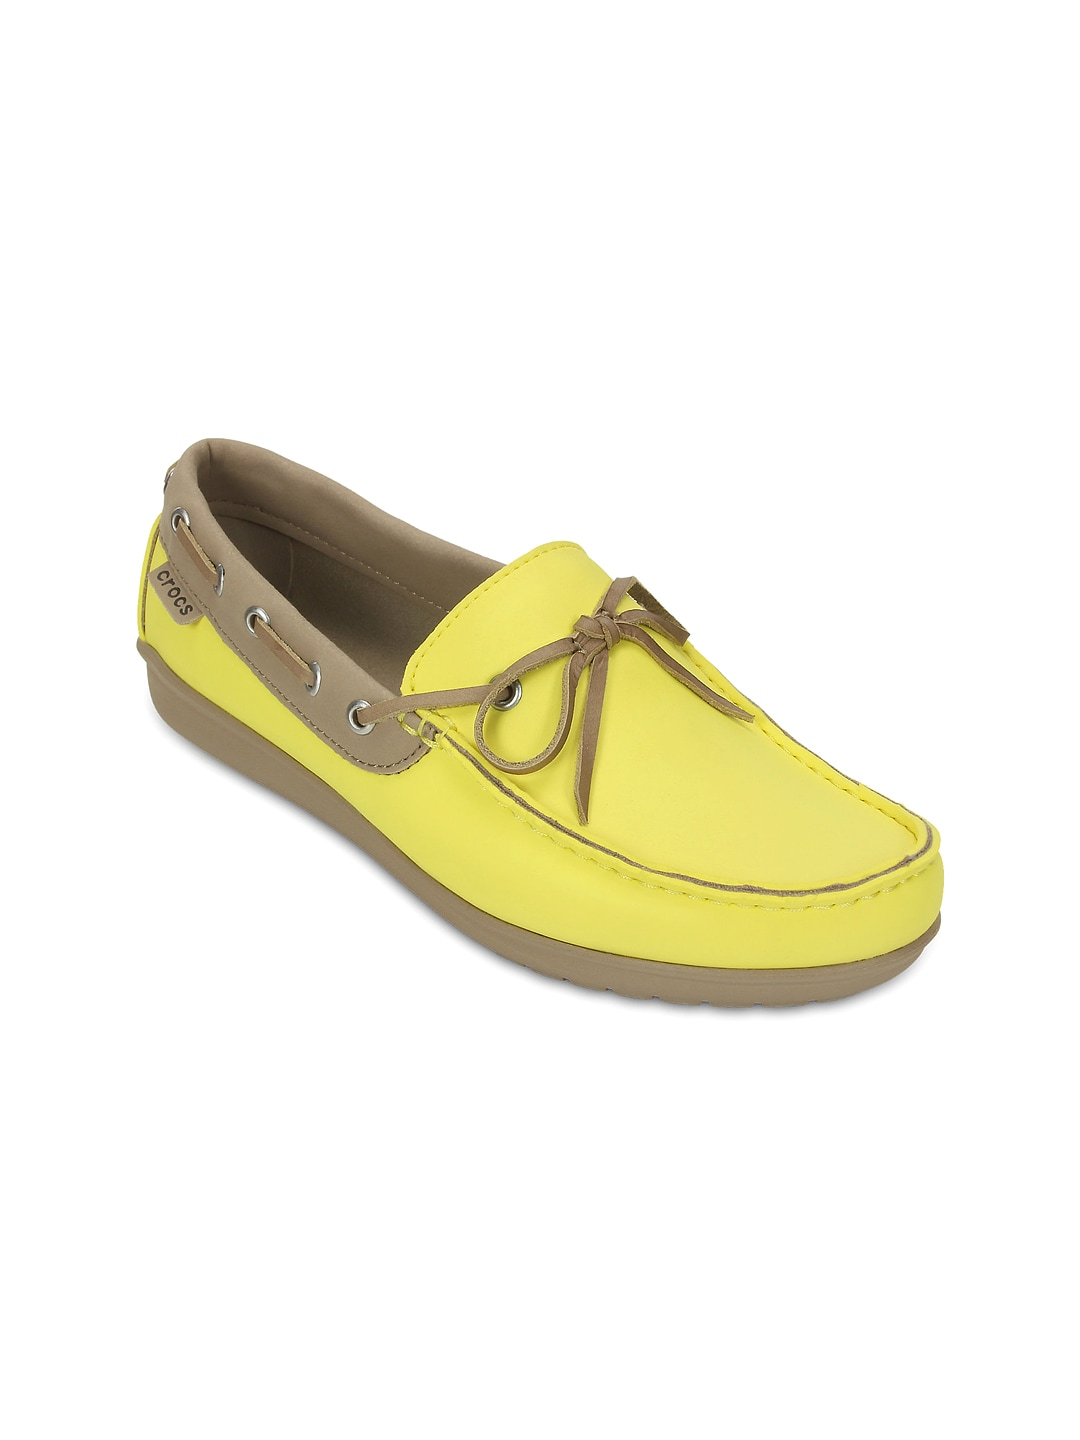 7f81ee4f9679 Buy Crocs Women Yellow Boat Shoes - Casual Shoes for Women 1258720 ...